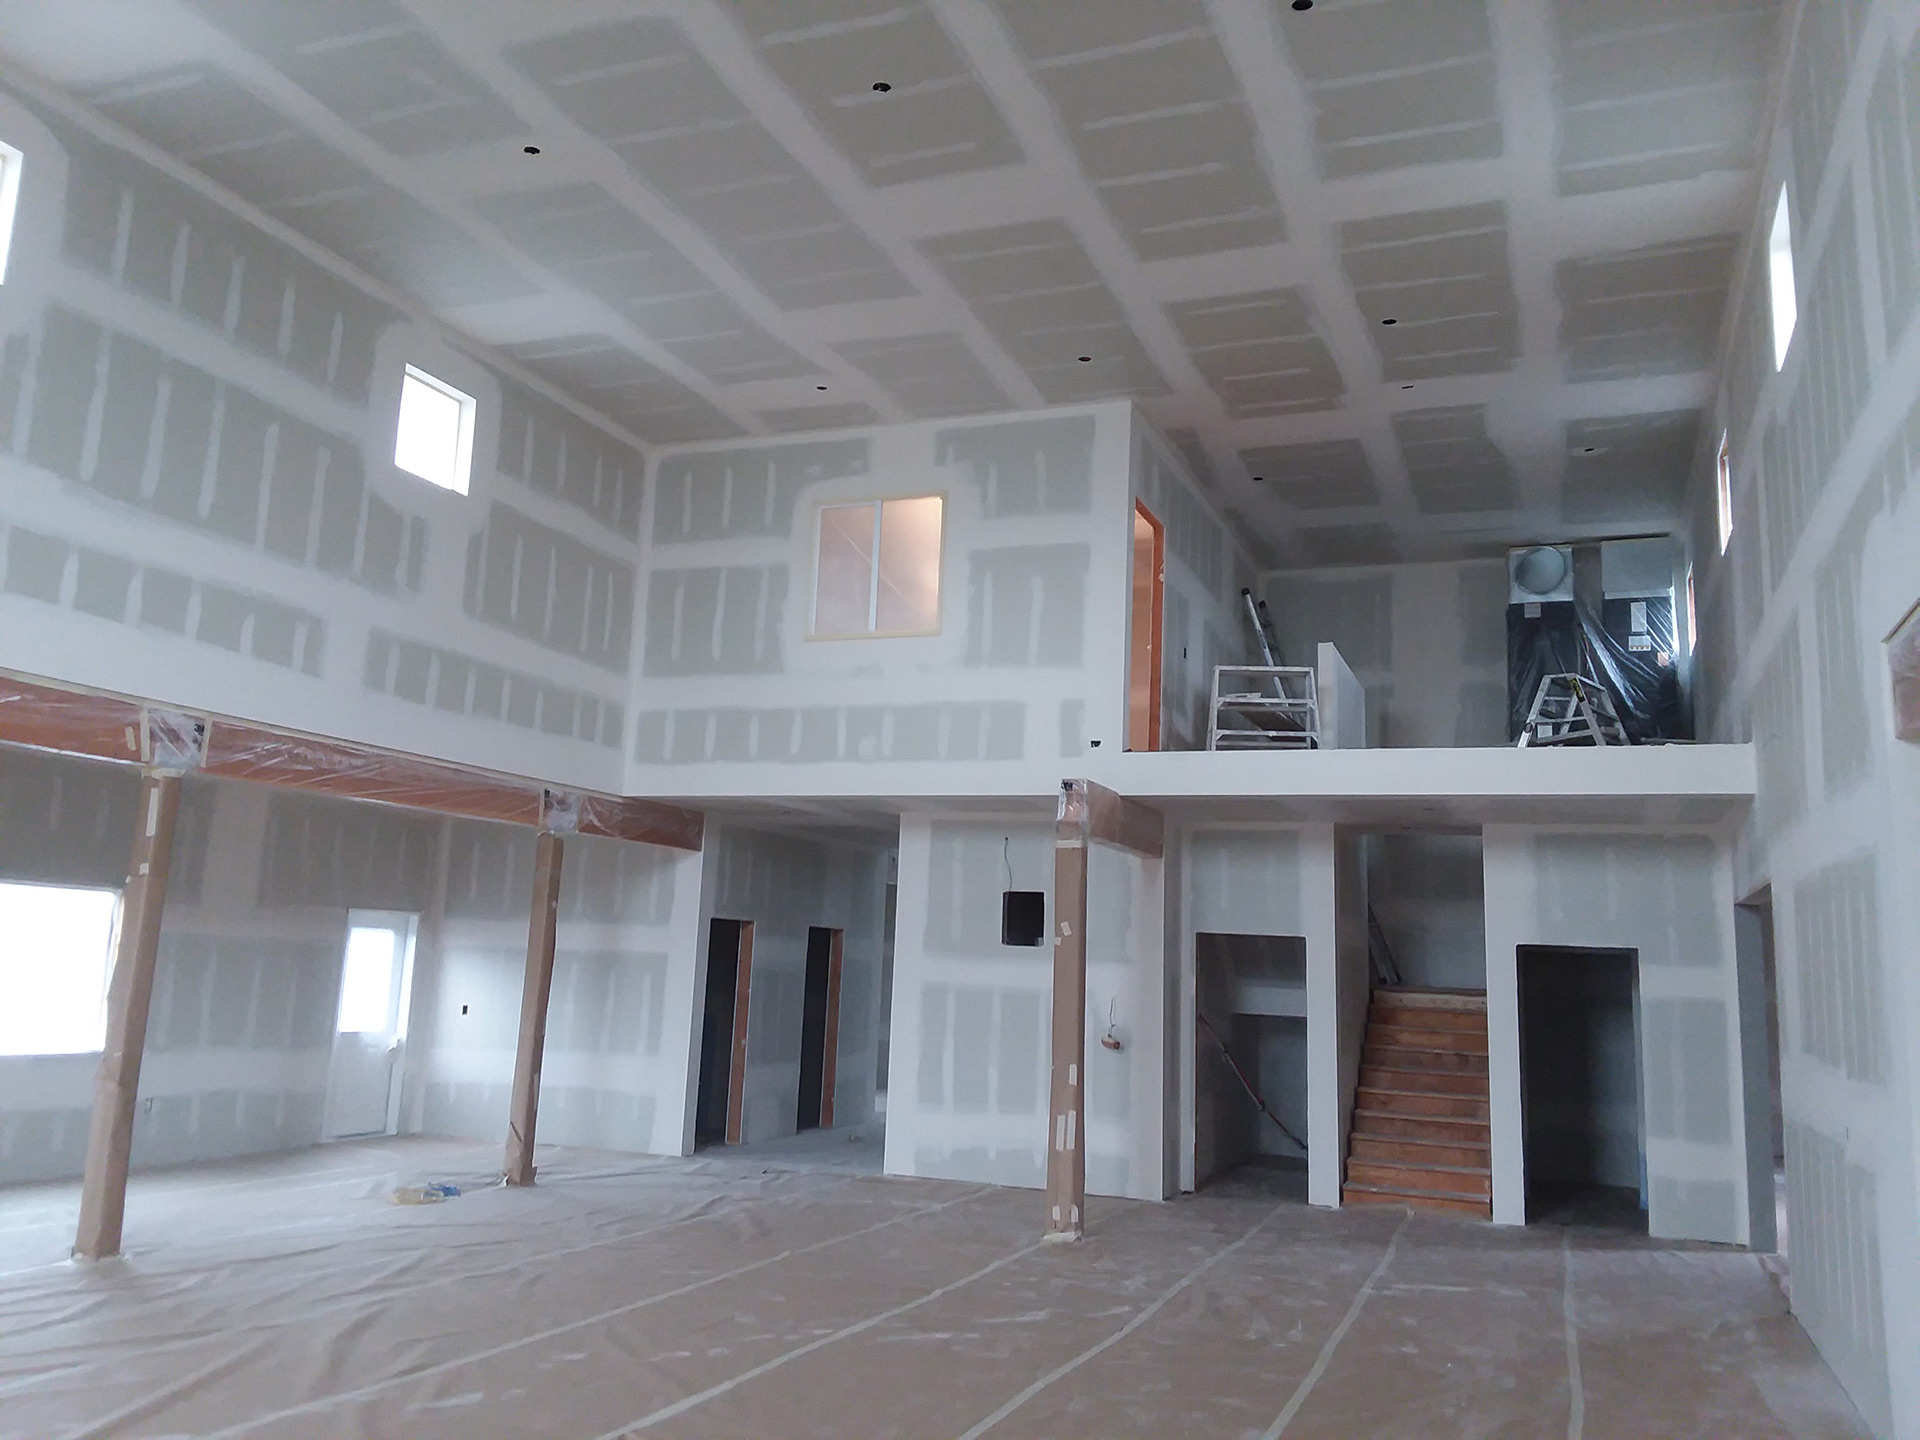 North End Interiors specializes in drywall patch-and-match construction services for vacation, coast, & mountain properties on Camano Island, Stanwood Area in Snohomish County, Washington